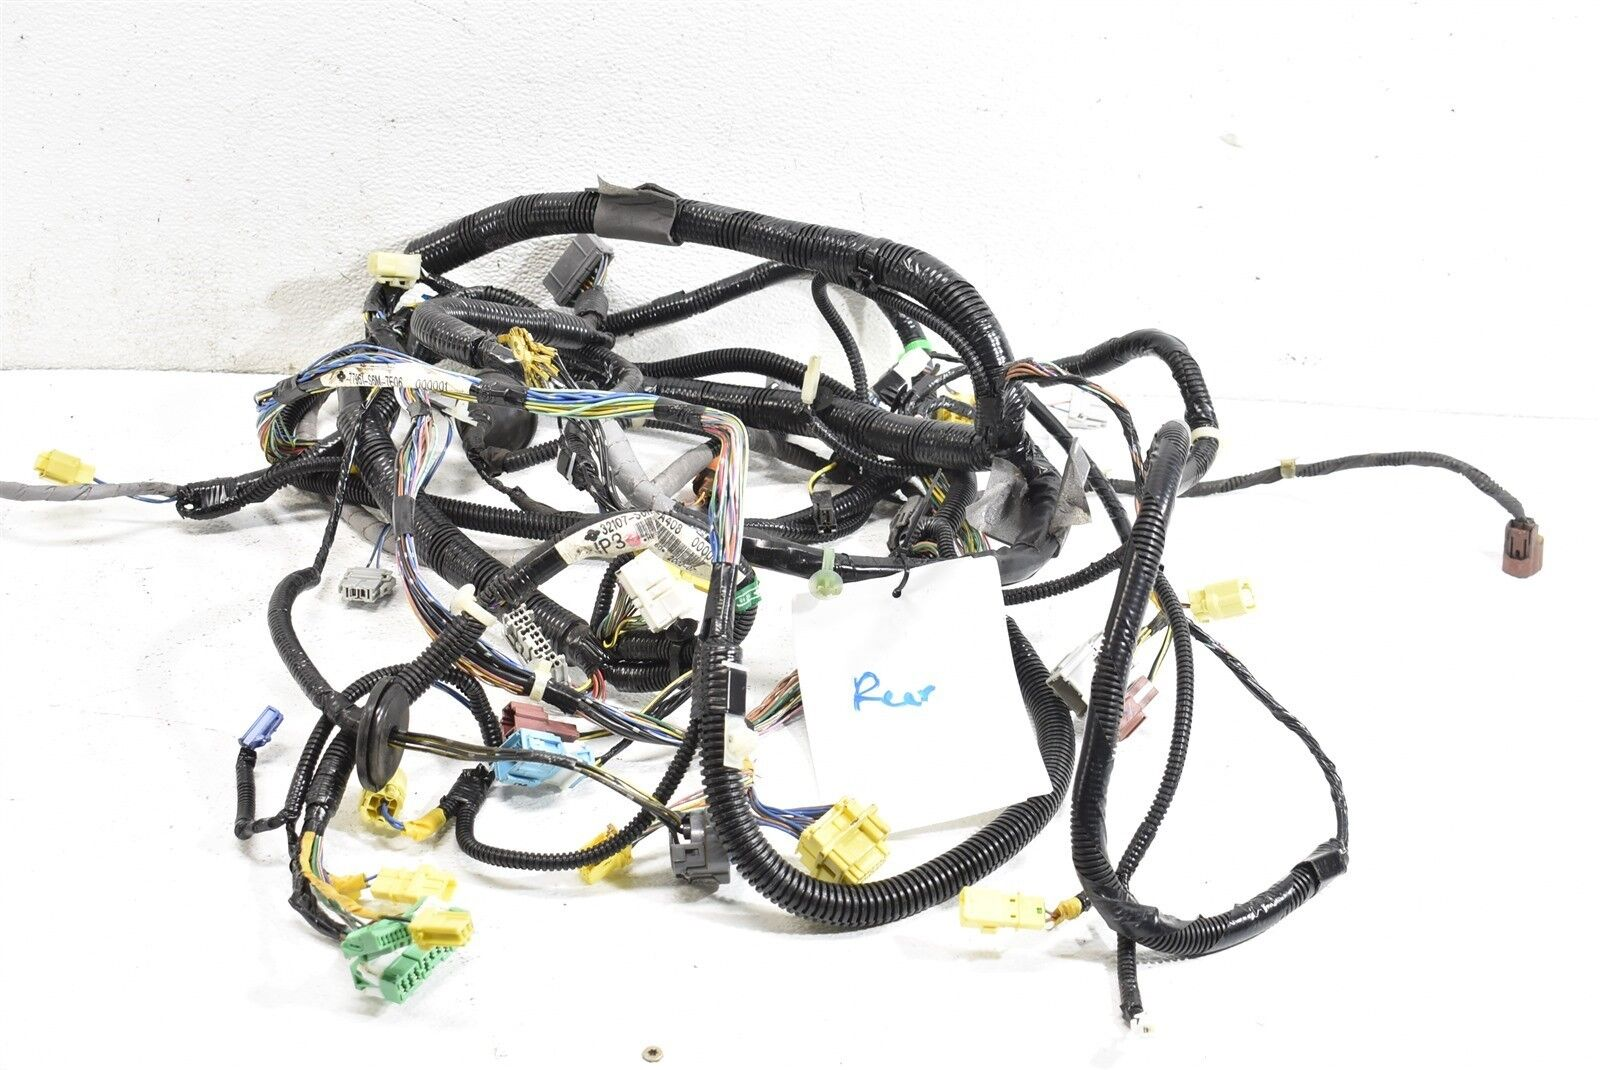 Wiring Harness For Acura Rsx | A day with Wiring diagram on